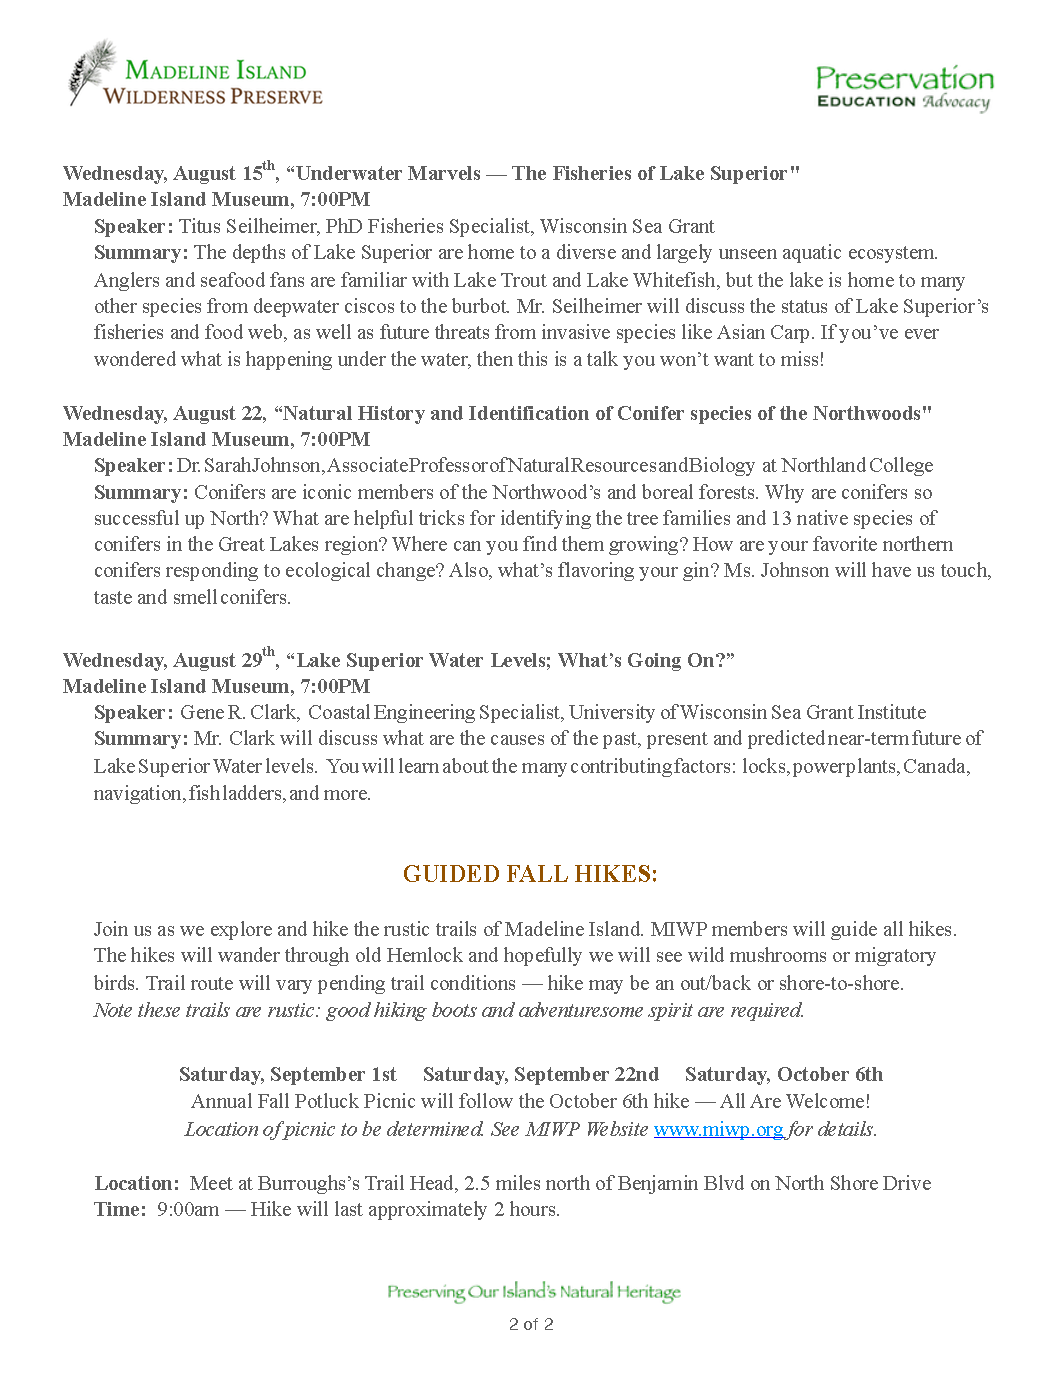 MIWP 2018 Event Schedule with Logos_Page_2.png